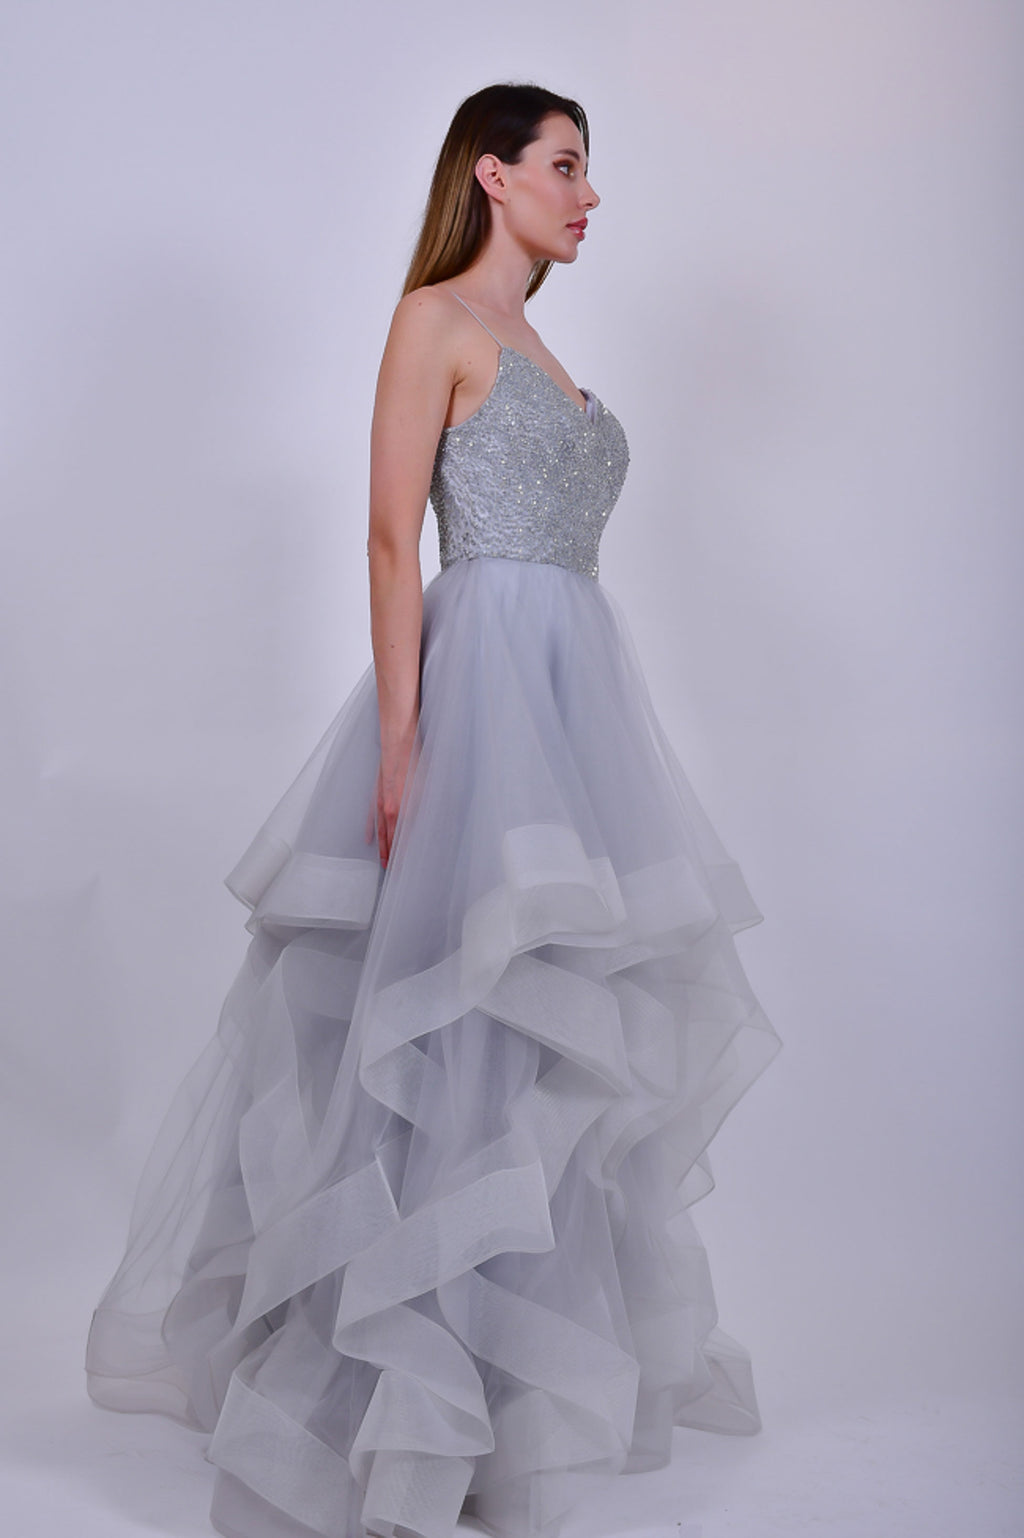 Silver Crystals Spaghetti Straps Evening Gown with Tulle